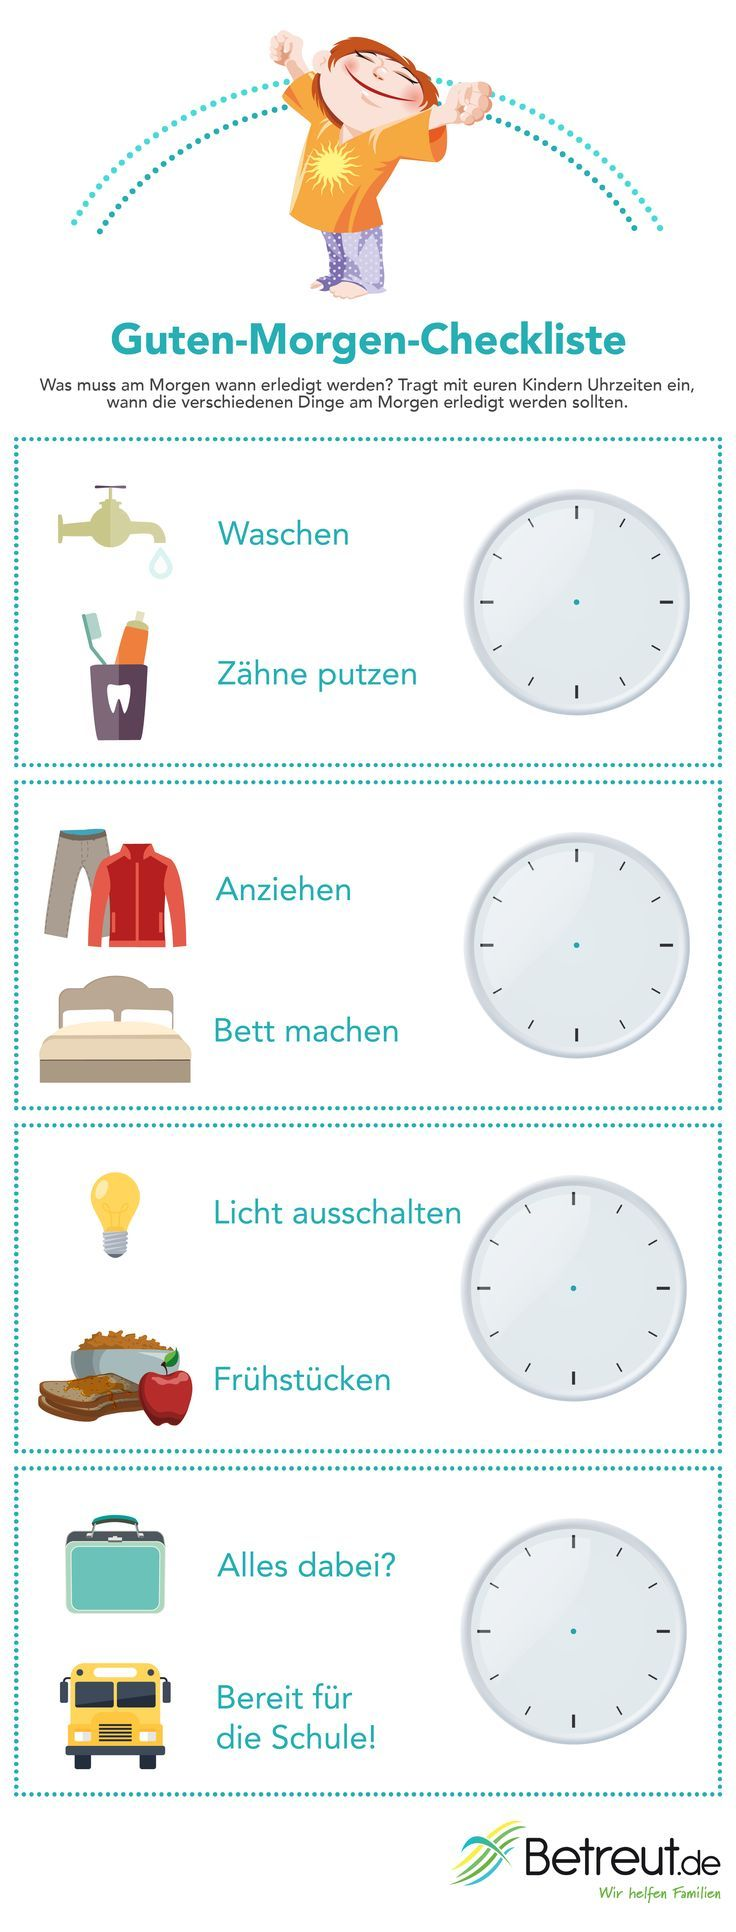 die guten morgen checkliste n m ina kindergarten kids parenting a flylady. Black Bedroom Furniture Sets. Home Design Ideas